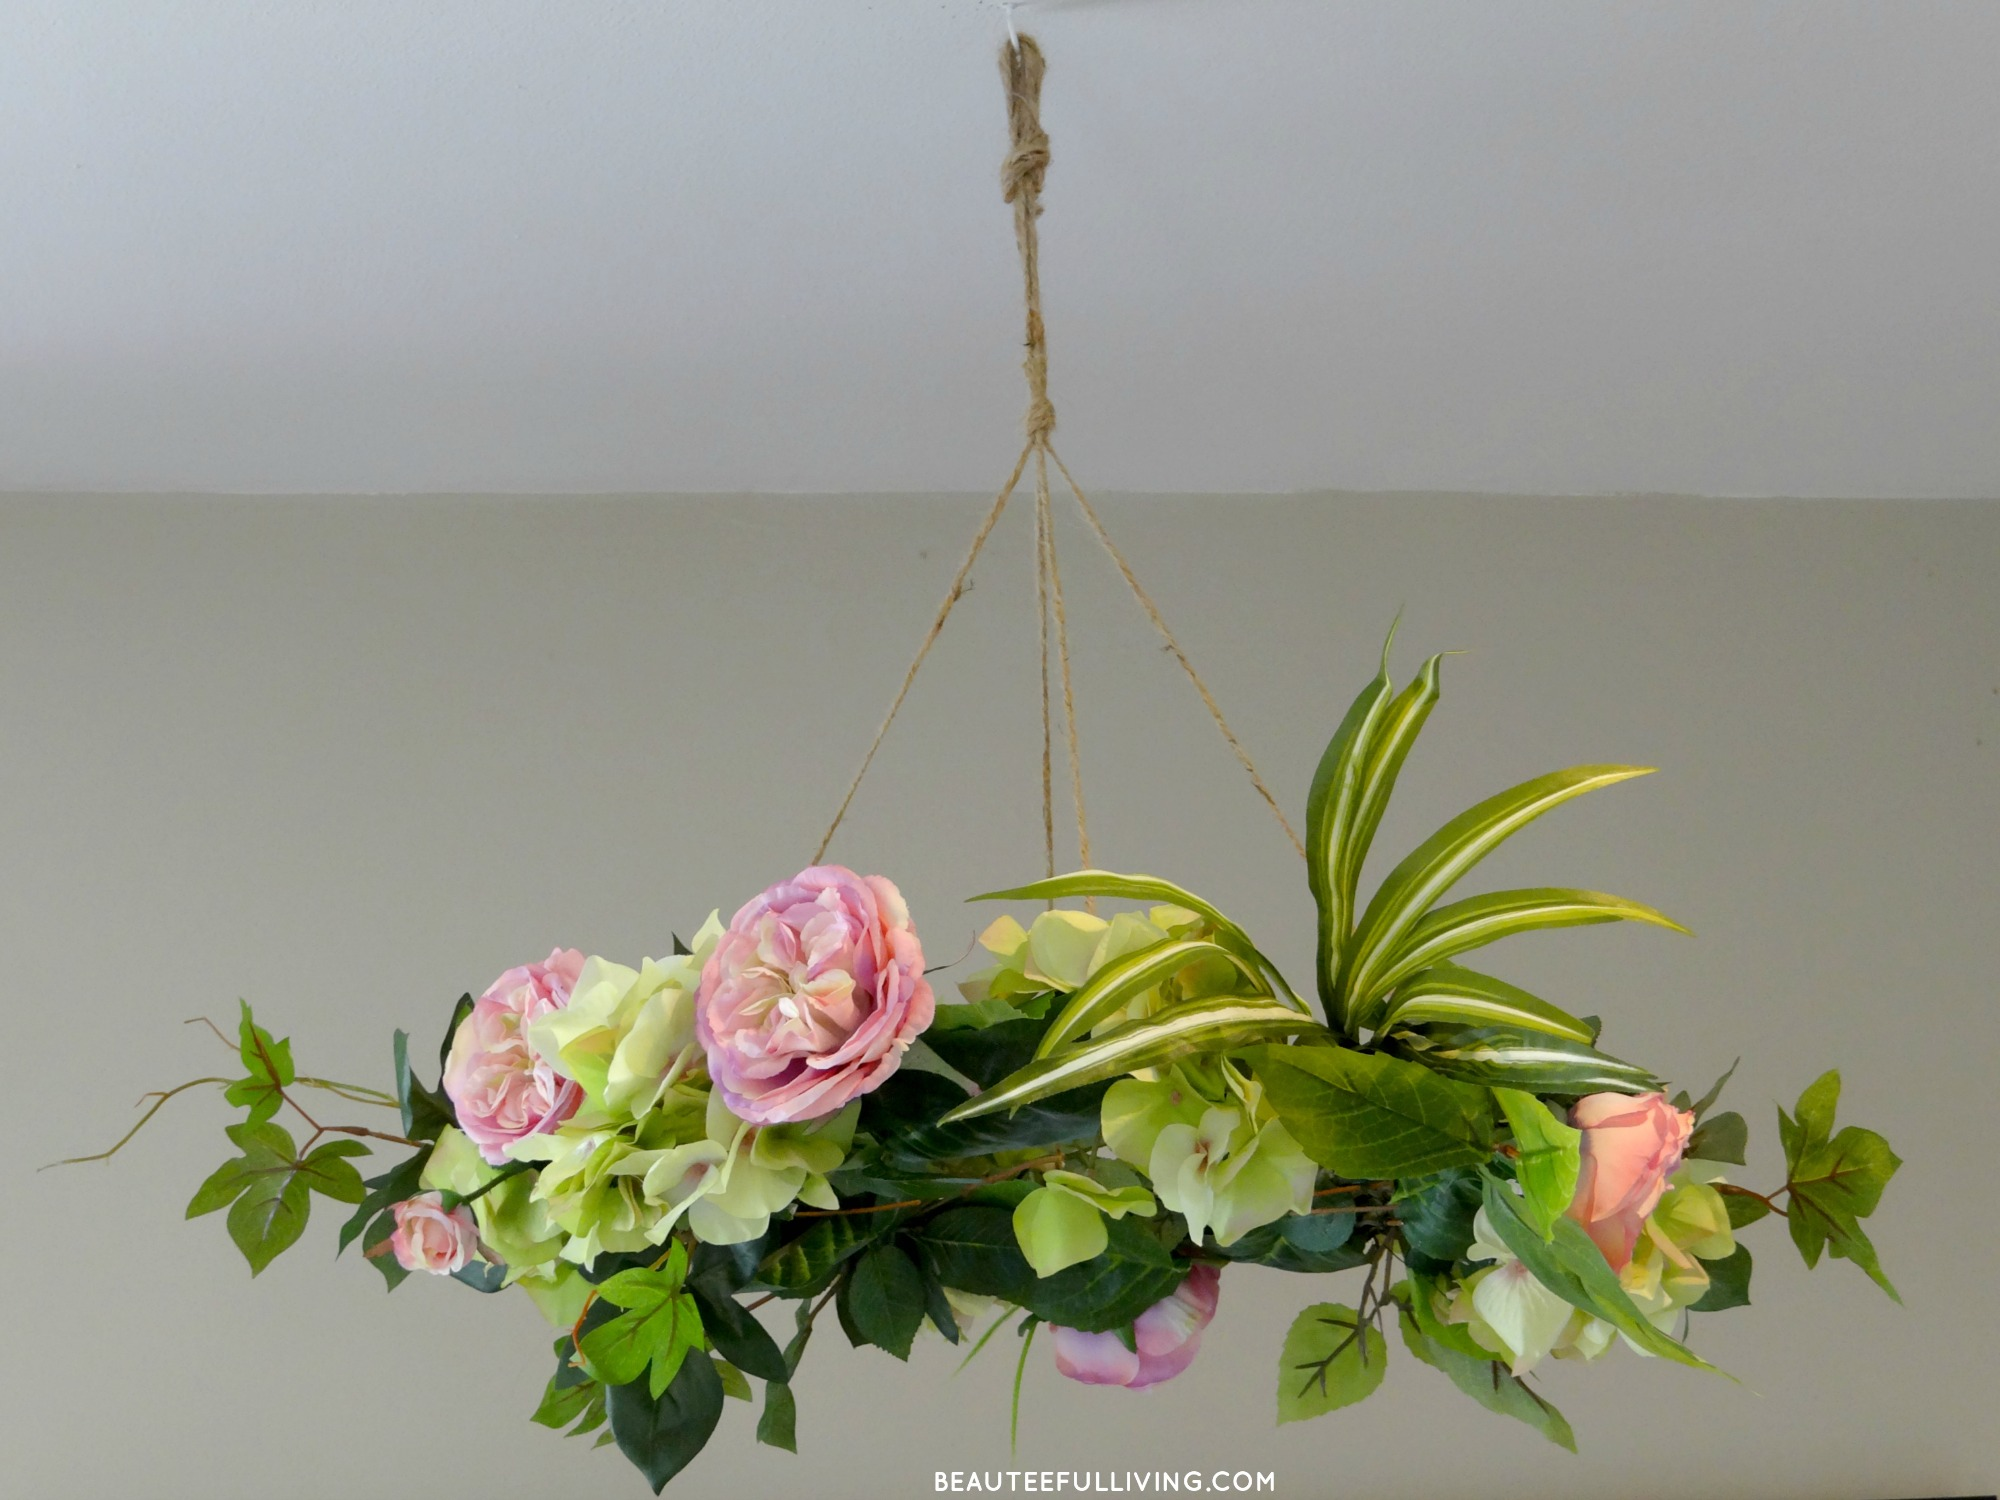 Hanging floral chandelier diy beauteeful living silk floral chandelier beauteeful living aloadofball Image collections